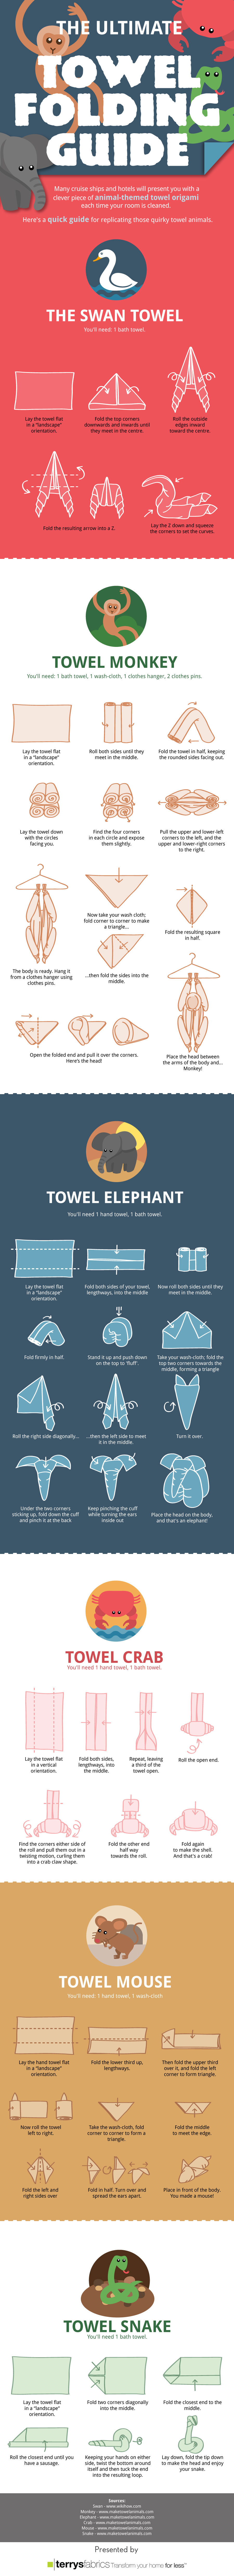 The Ultimate Towel Folding Guide